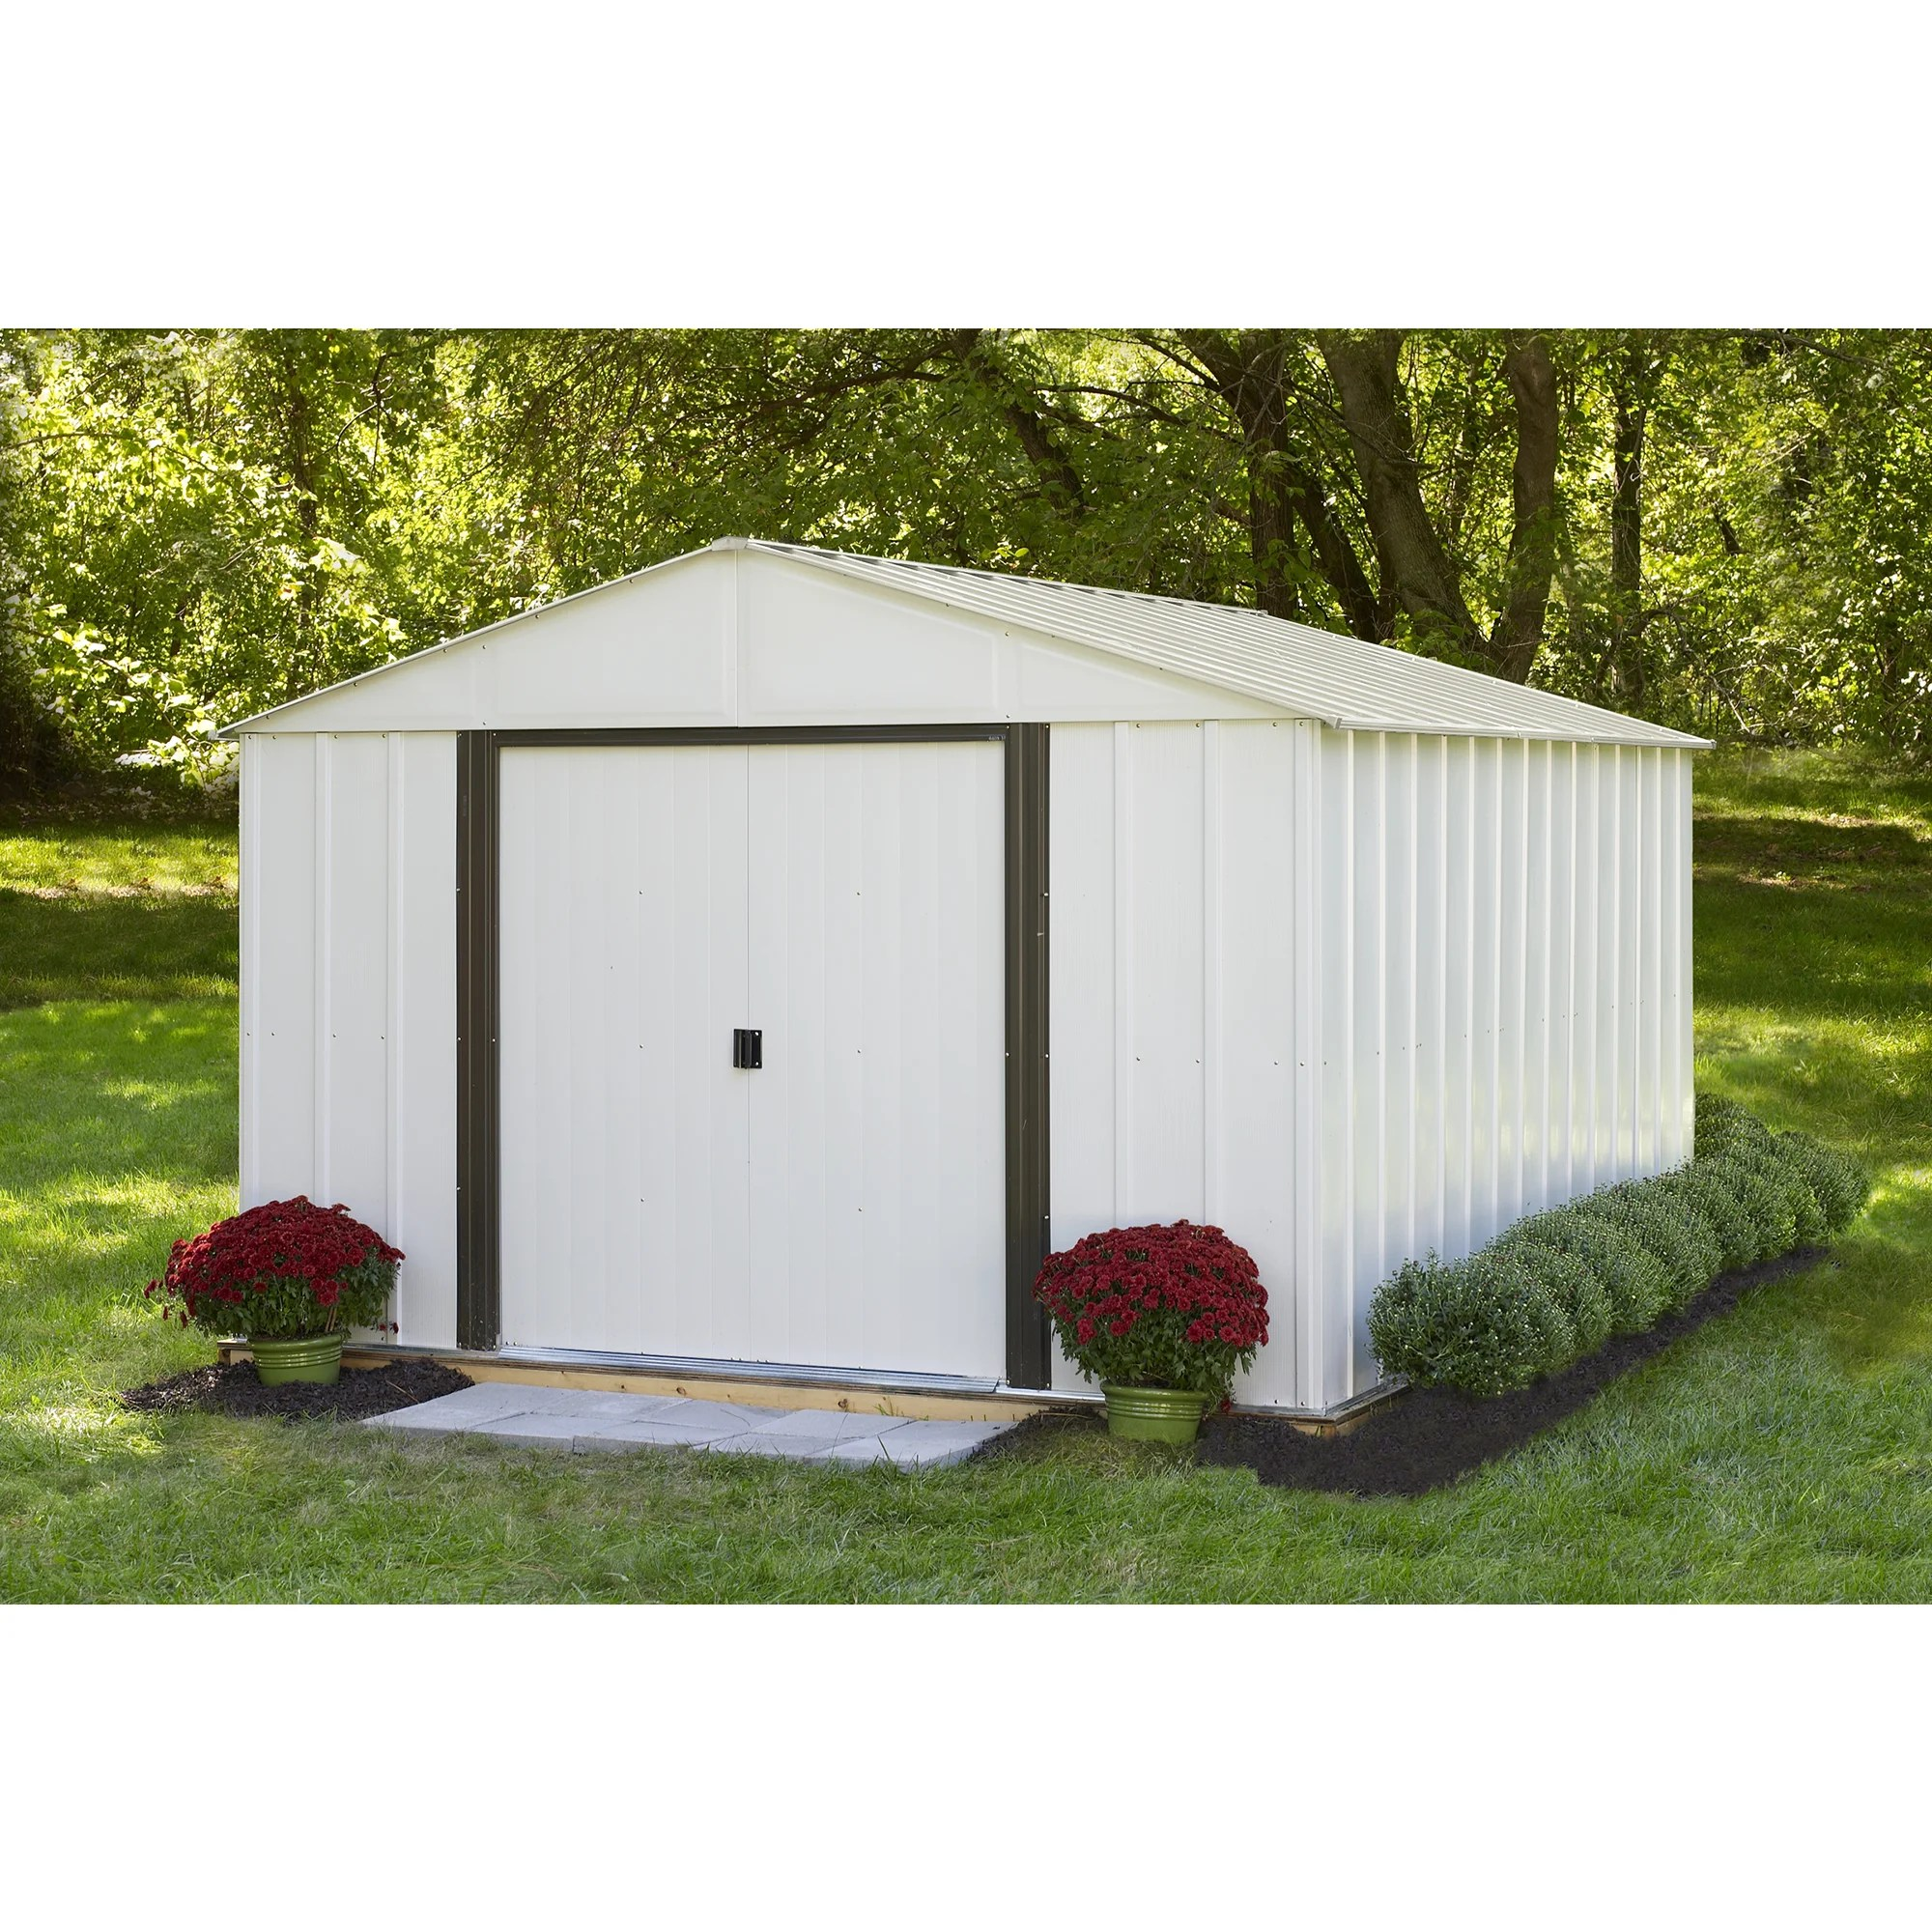 Steel Storage Sheds Arrow Arlington 10 X 12 Galvanized Steel Storage Shed